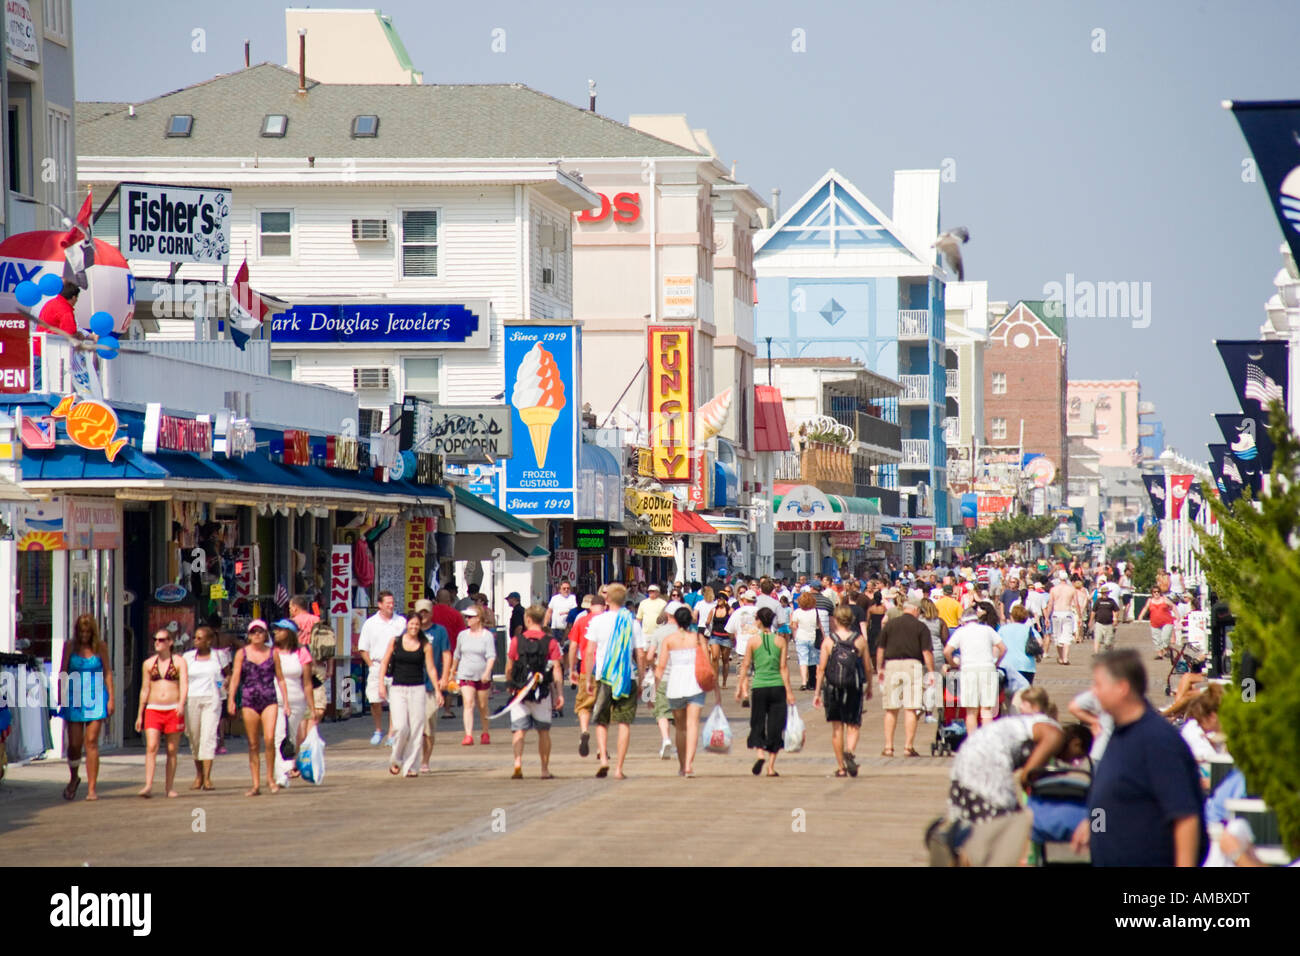 A Crowded Boardwalk In Ocean City Maryland Usa Stock Photo